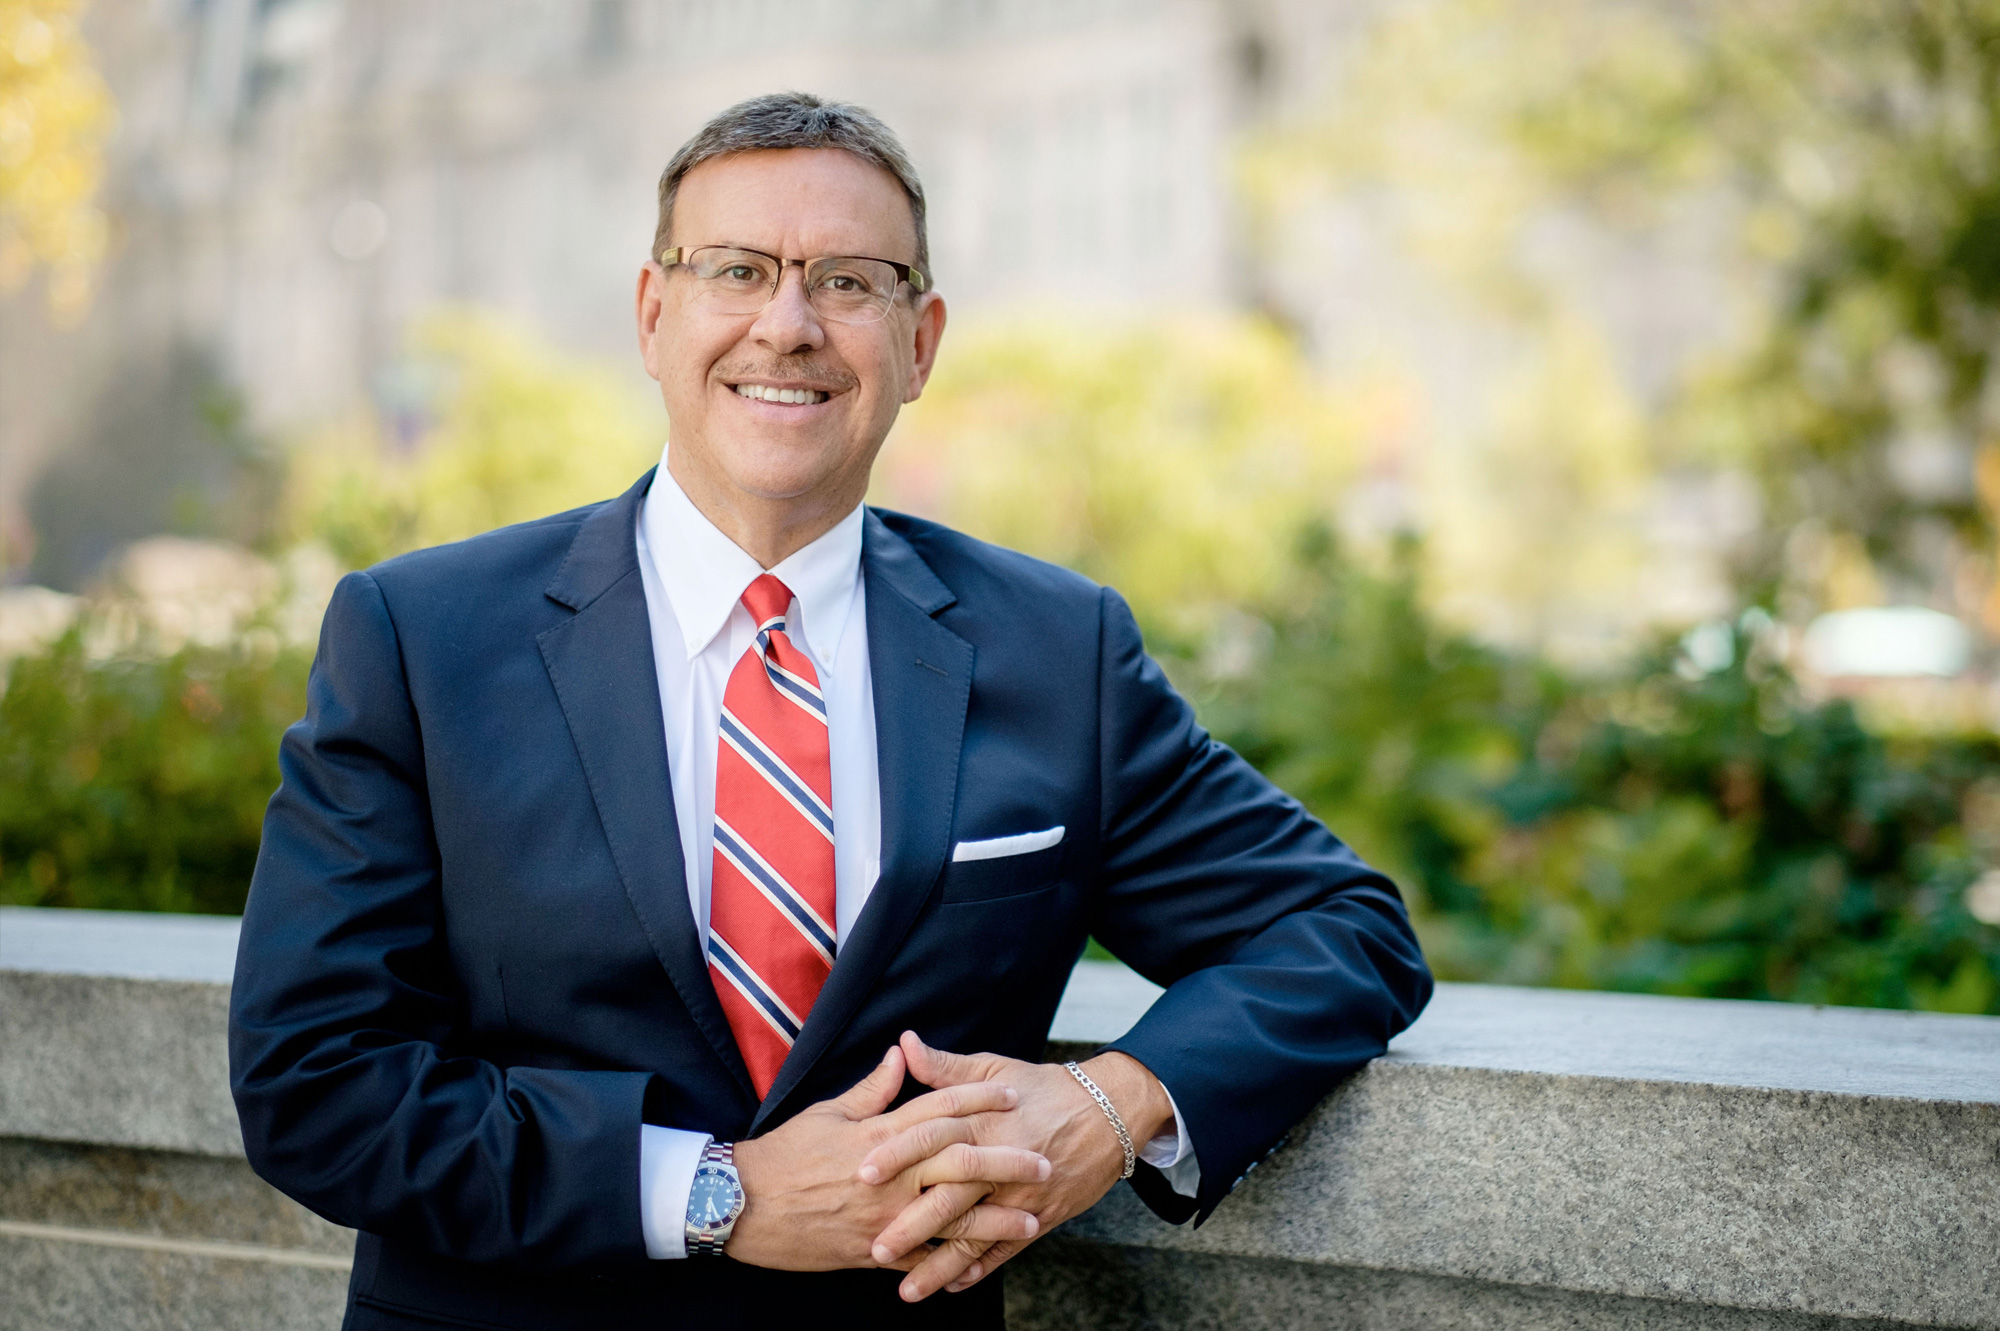 Portrait photo of Rand Spear Accident Attorney smiling